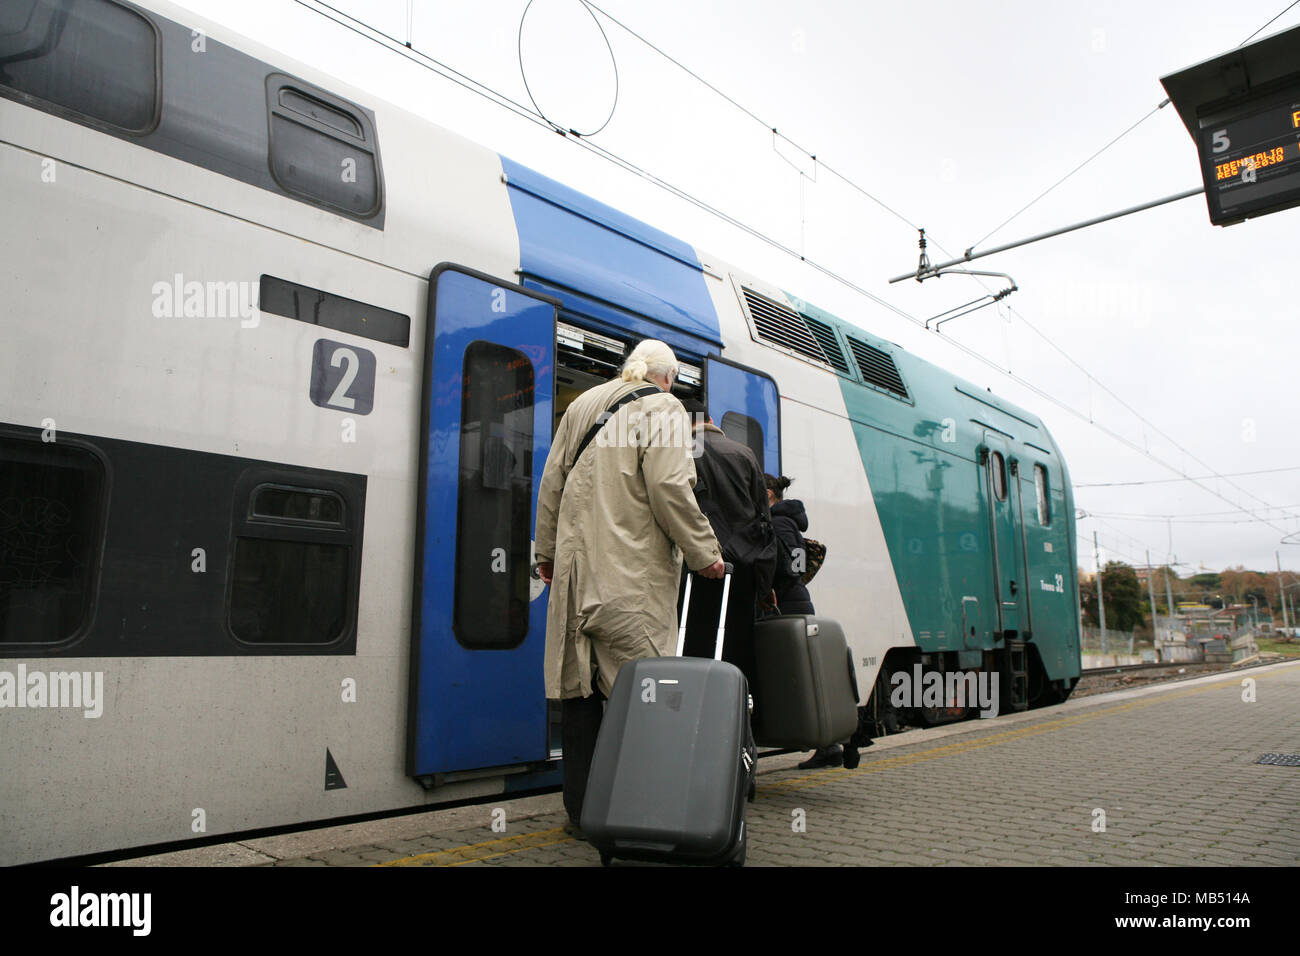 Passengers boarding the shuttle train to Fiumicino in Trastevere railway station, Rome, Italy - Stock Image